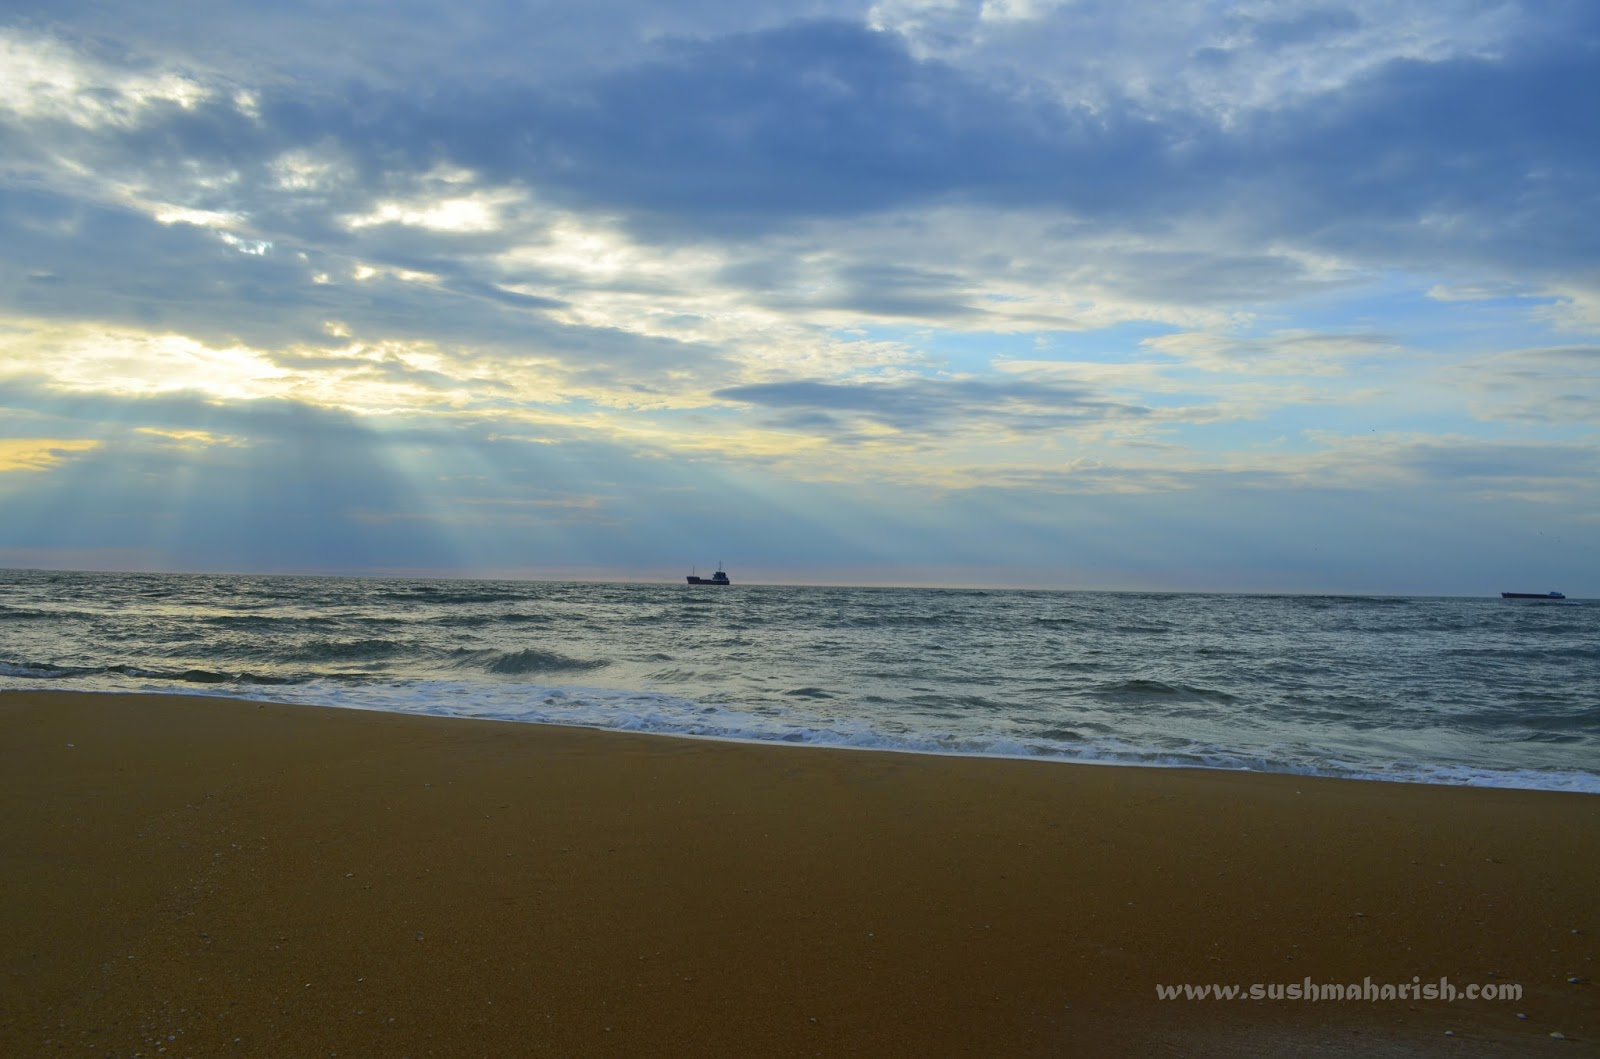 Two Best Beaches Of Udupi - Bengre The Silent Estuary And The Swarming Malpe 6